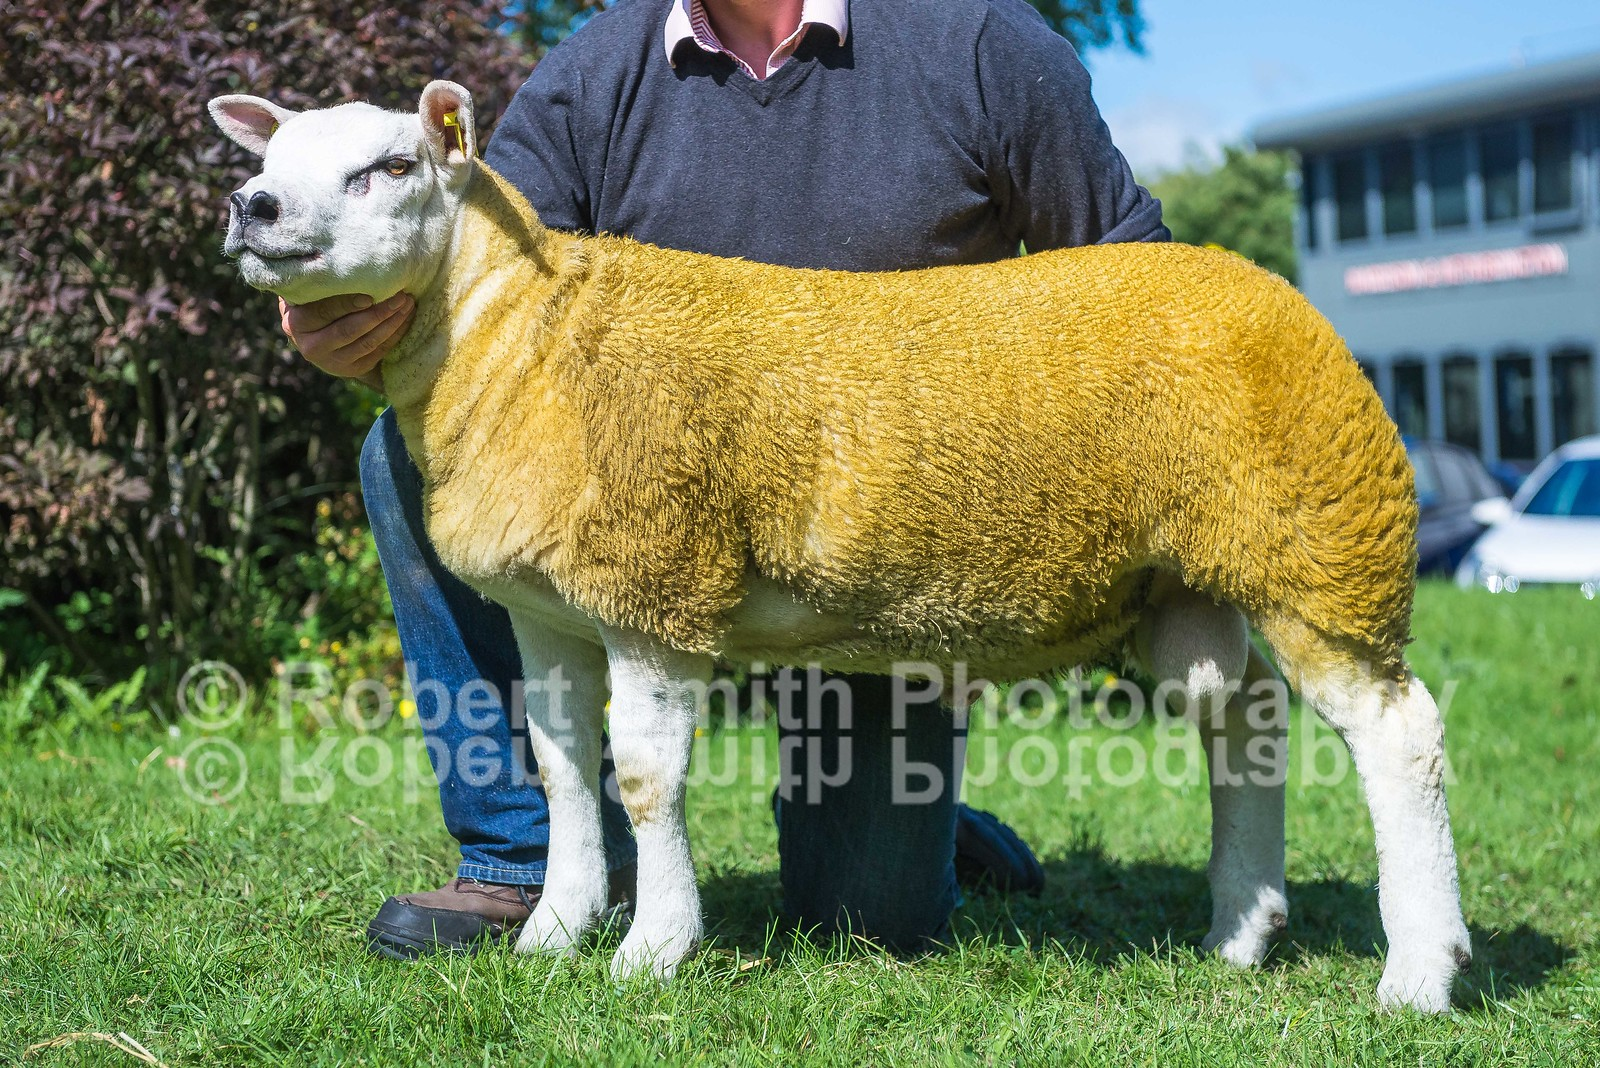 Lot 539 Ram Lamb sold for 40,000 gns